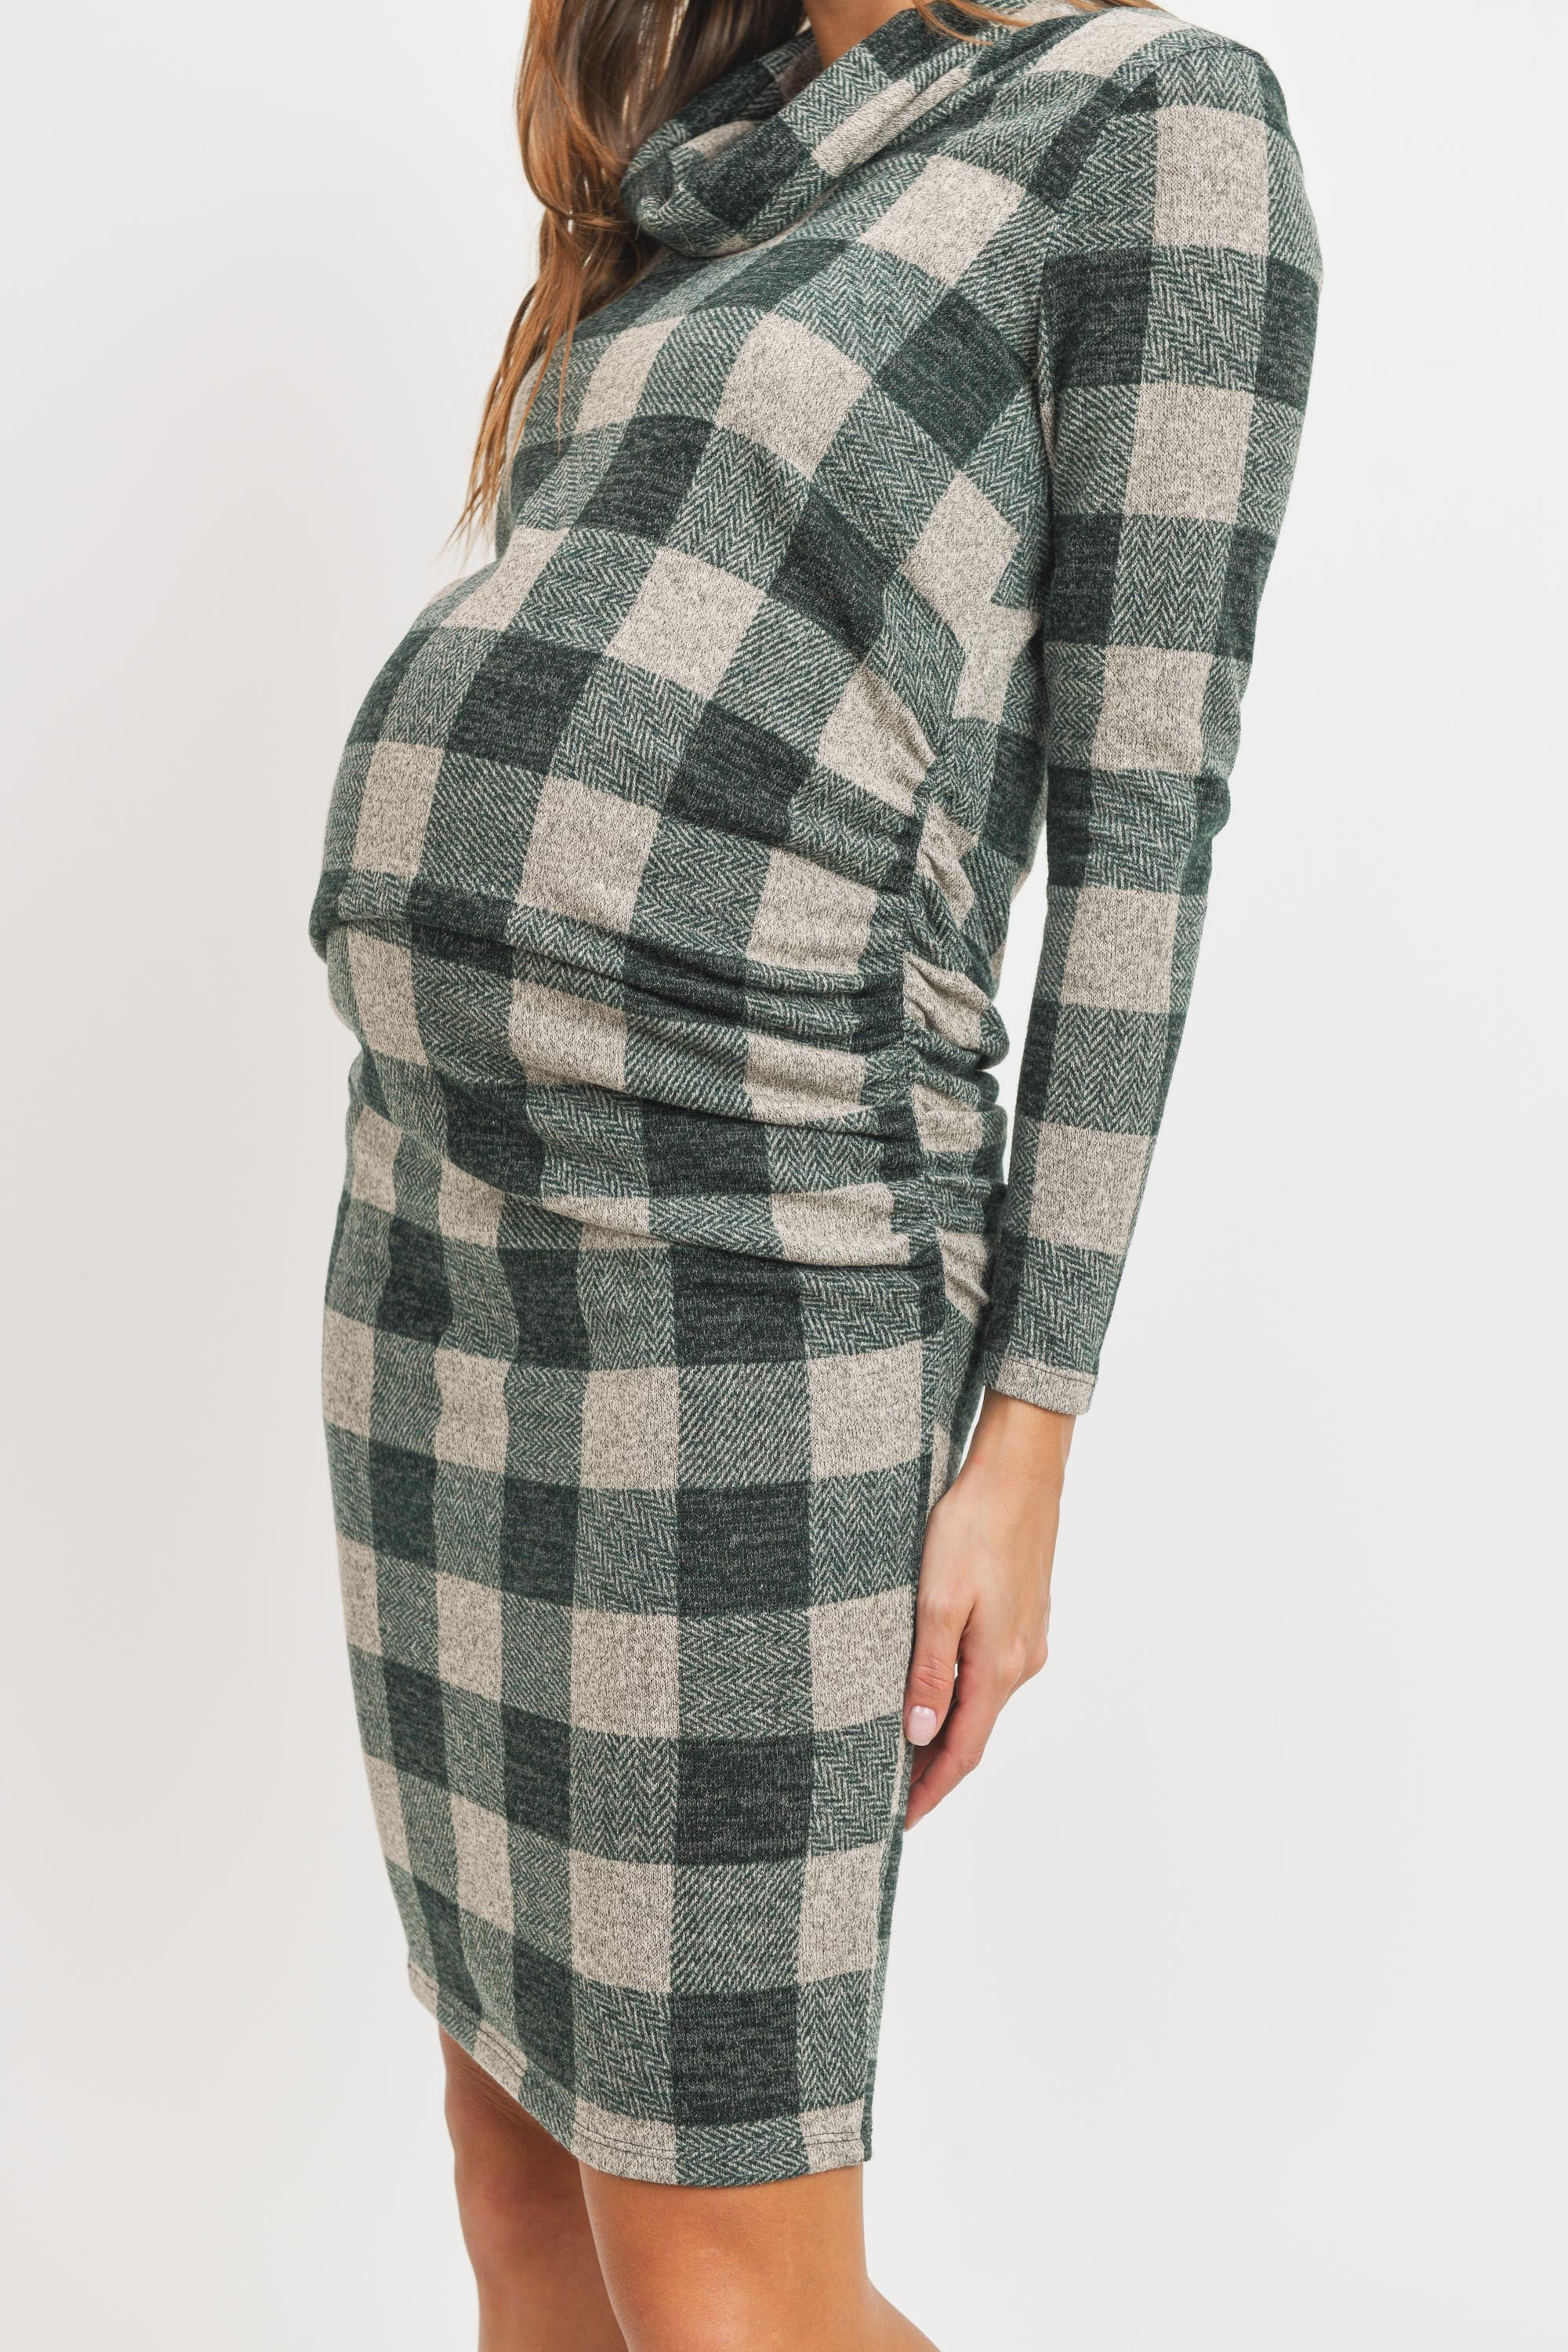 Sweater Knit Maternity Dress - Cowl Neck, Long Sleeve